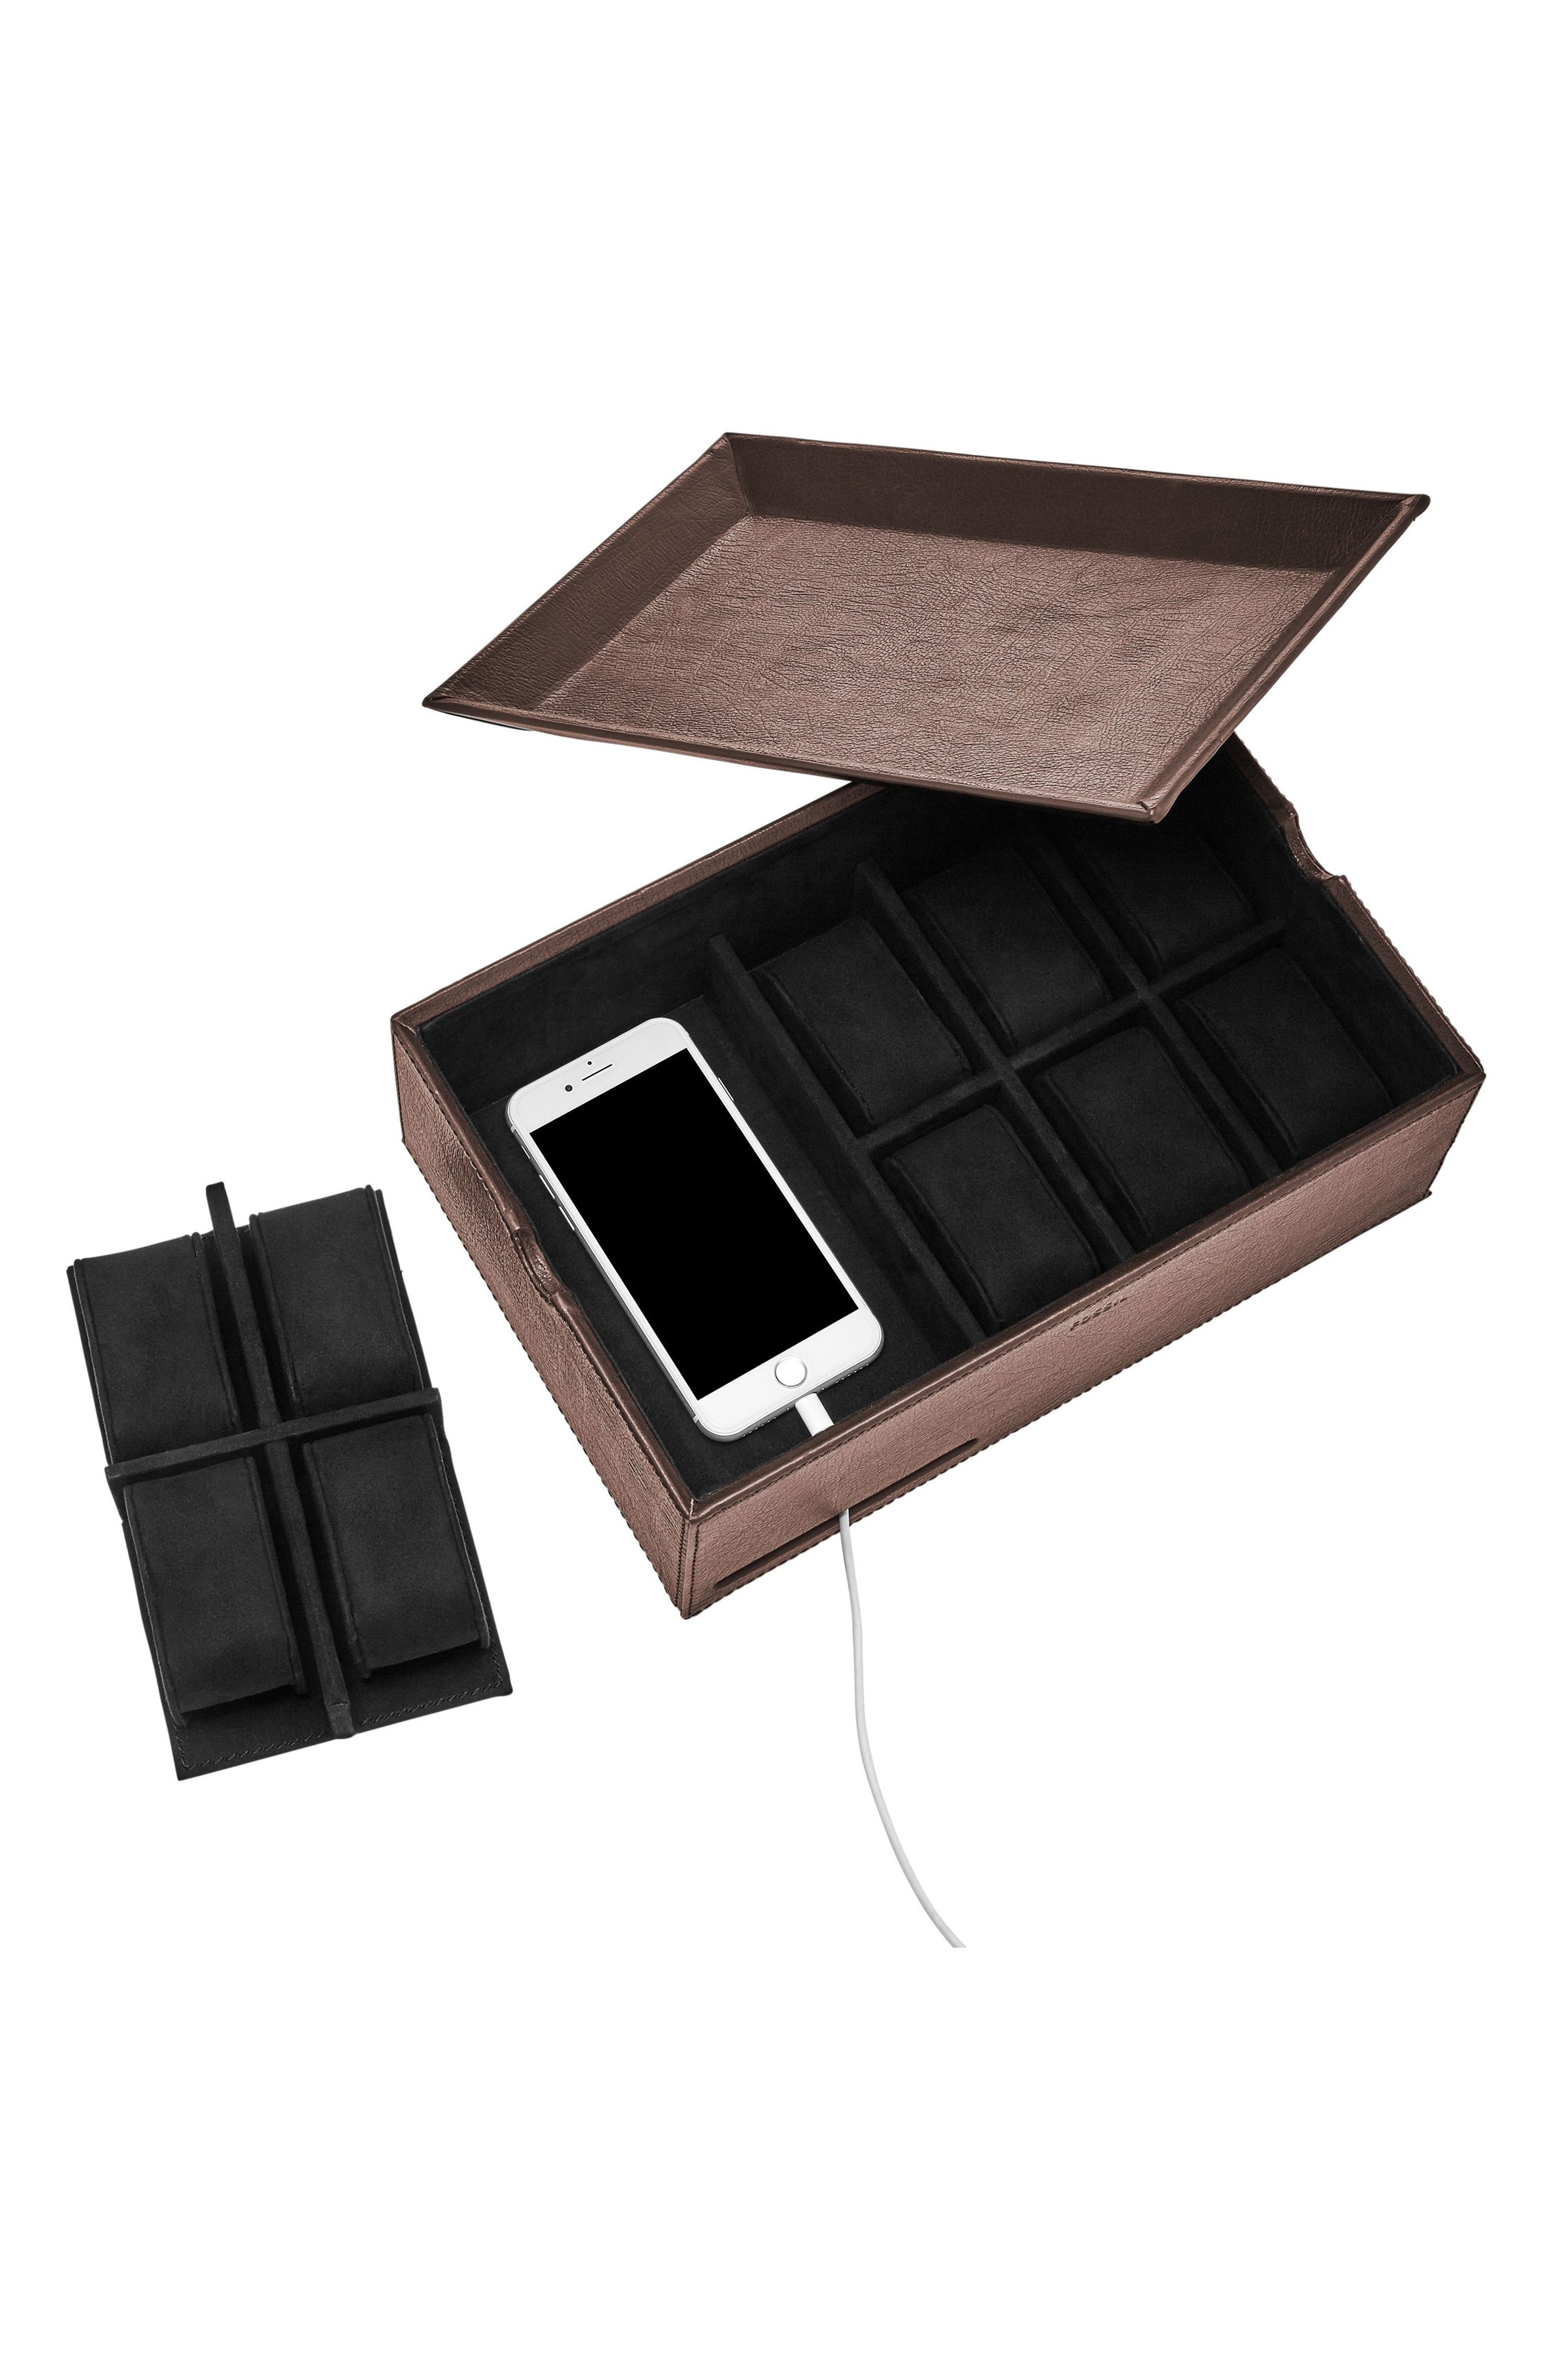 10-Piece Watch Box & Valet Tray,                             Alternate thumbnail 3, color,                             200